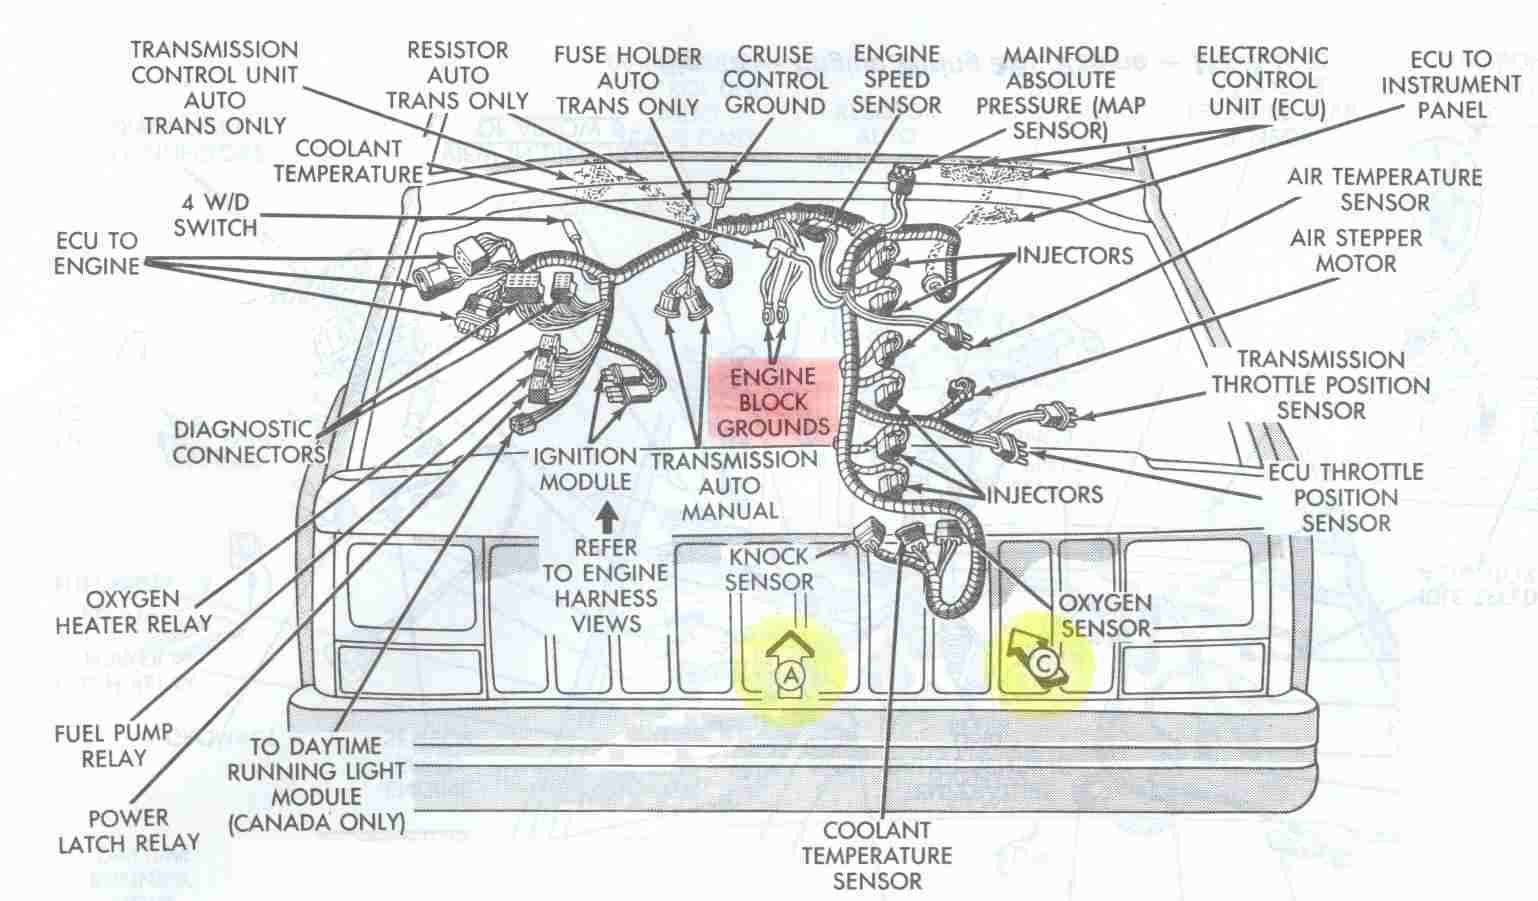 ab0134a7d9e021431187af597eb4aeca engine bay schematic showing major electrical ground points for 2004 jeep wrangler engine diagram at edmiracle.co